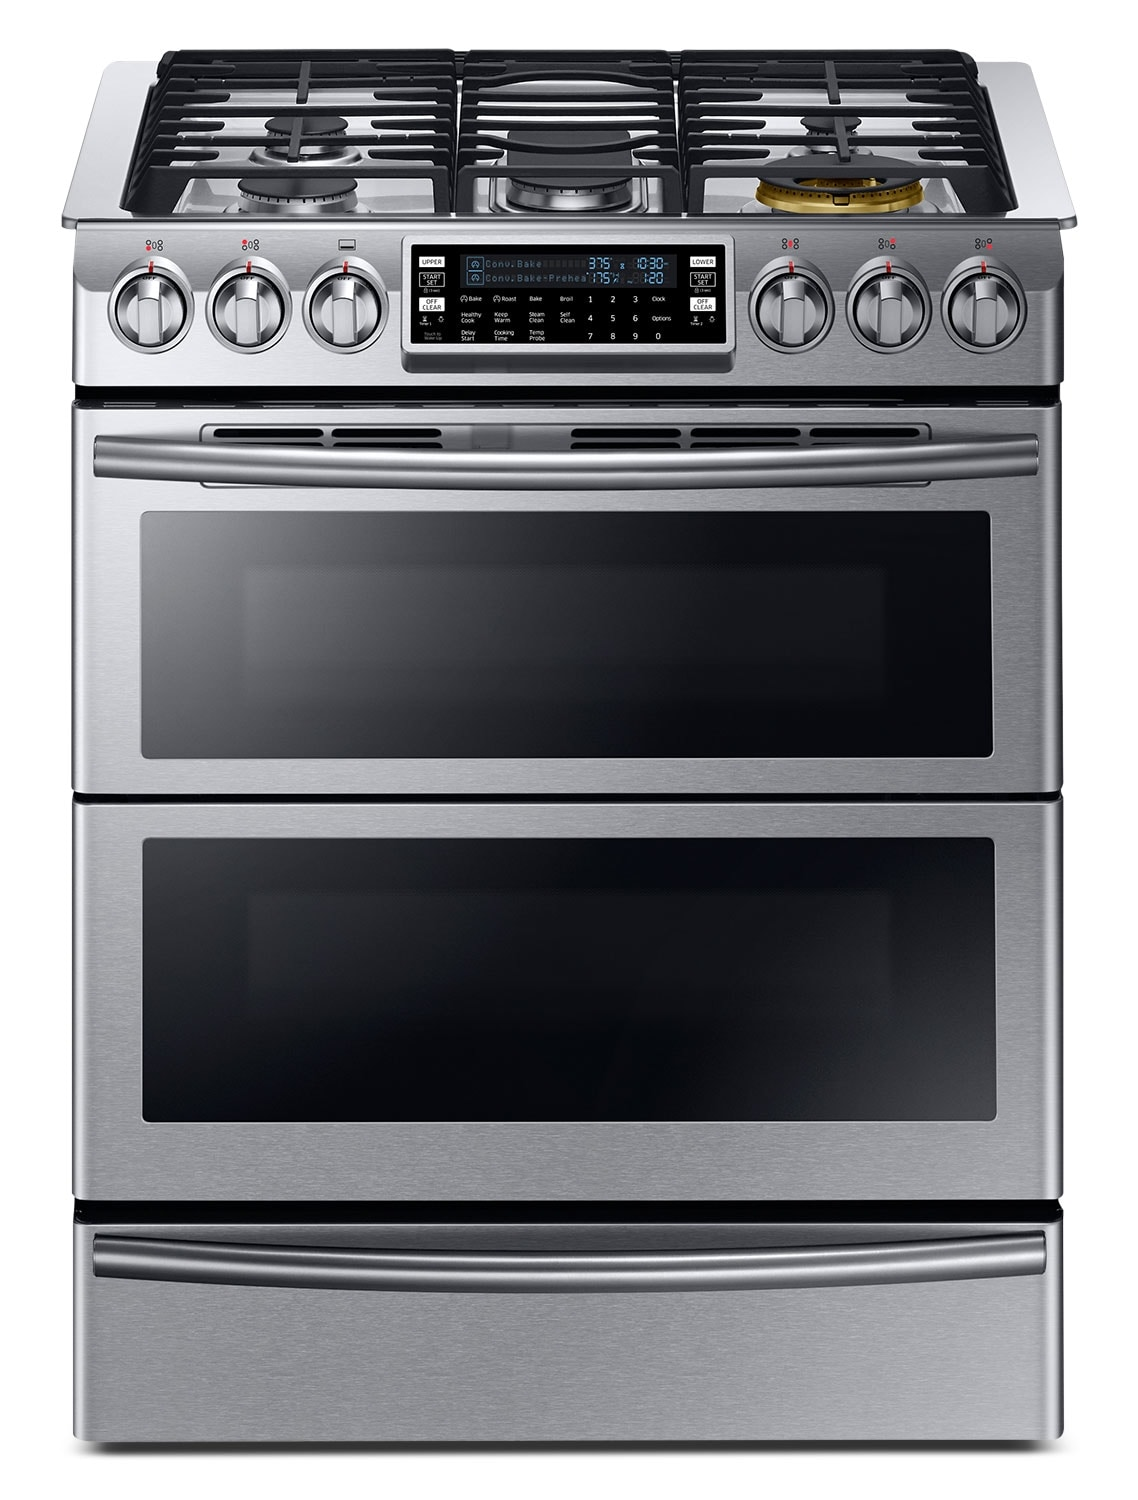 Double Oven Slide In Electric Range Stainless Steel Samsung 5.8 Cu. Ft. Dual-Fuel Slide-In Range – NY58J9850WS ...